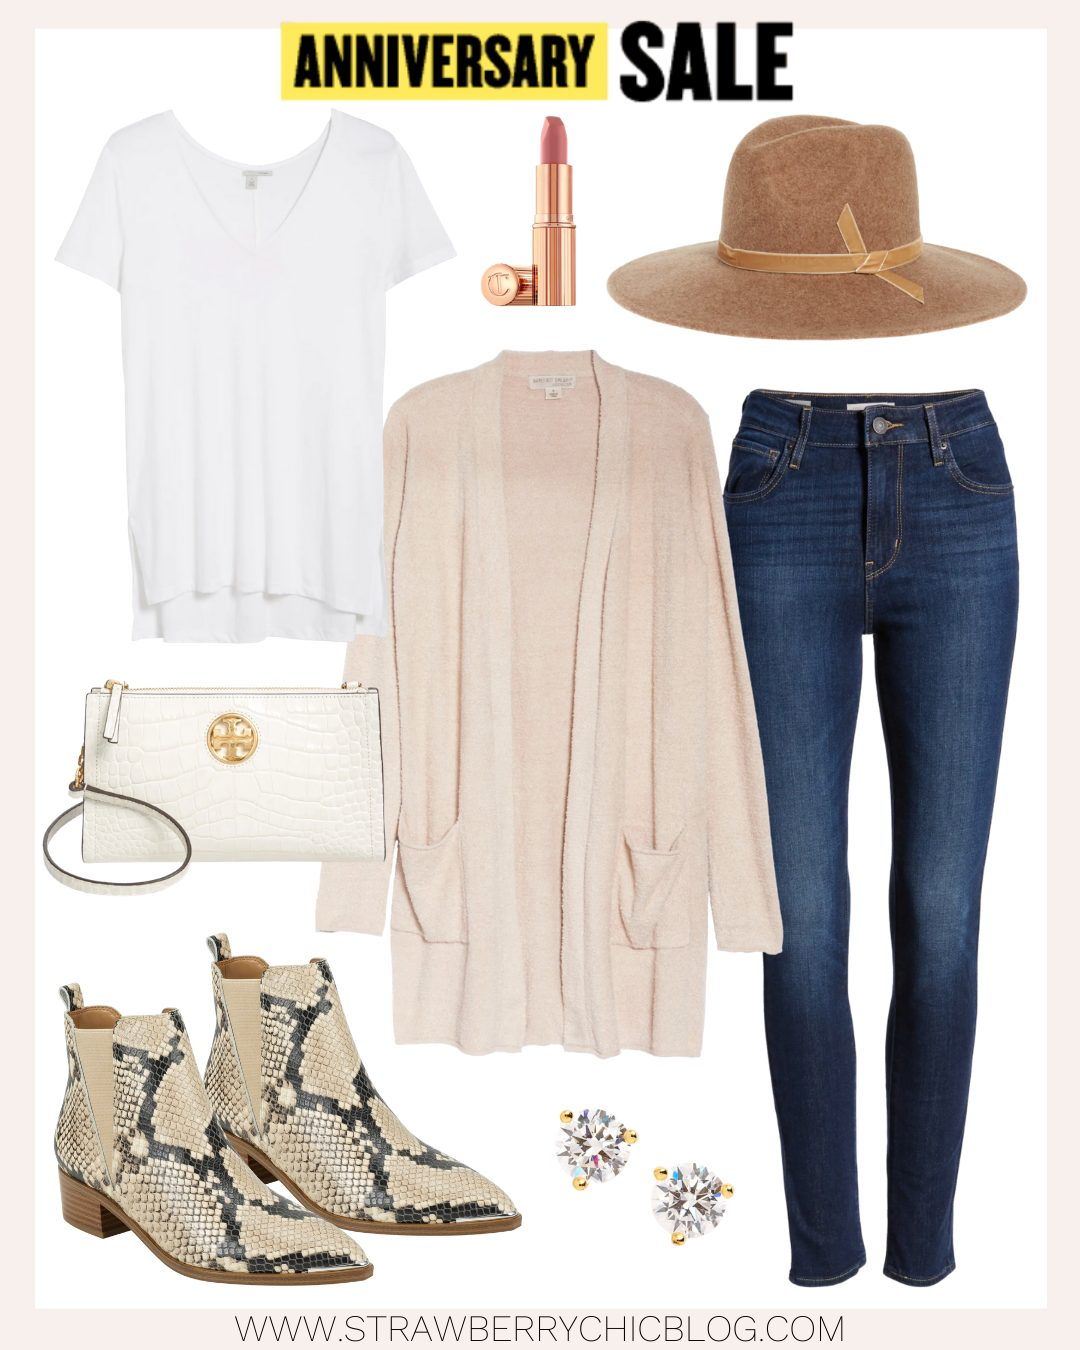 Fall Outfit ideas collage of women's clothes and accessories